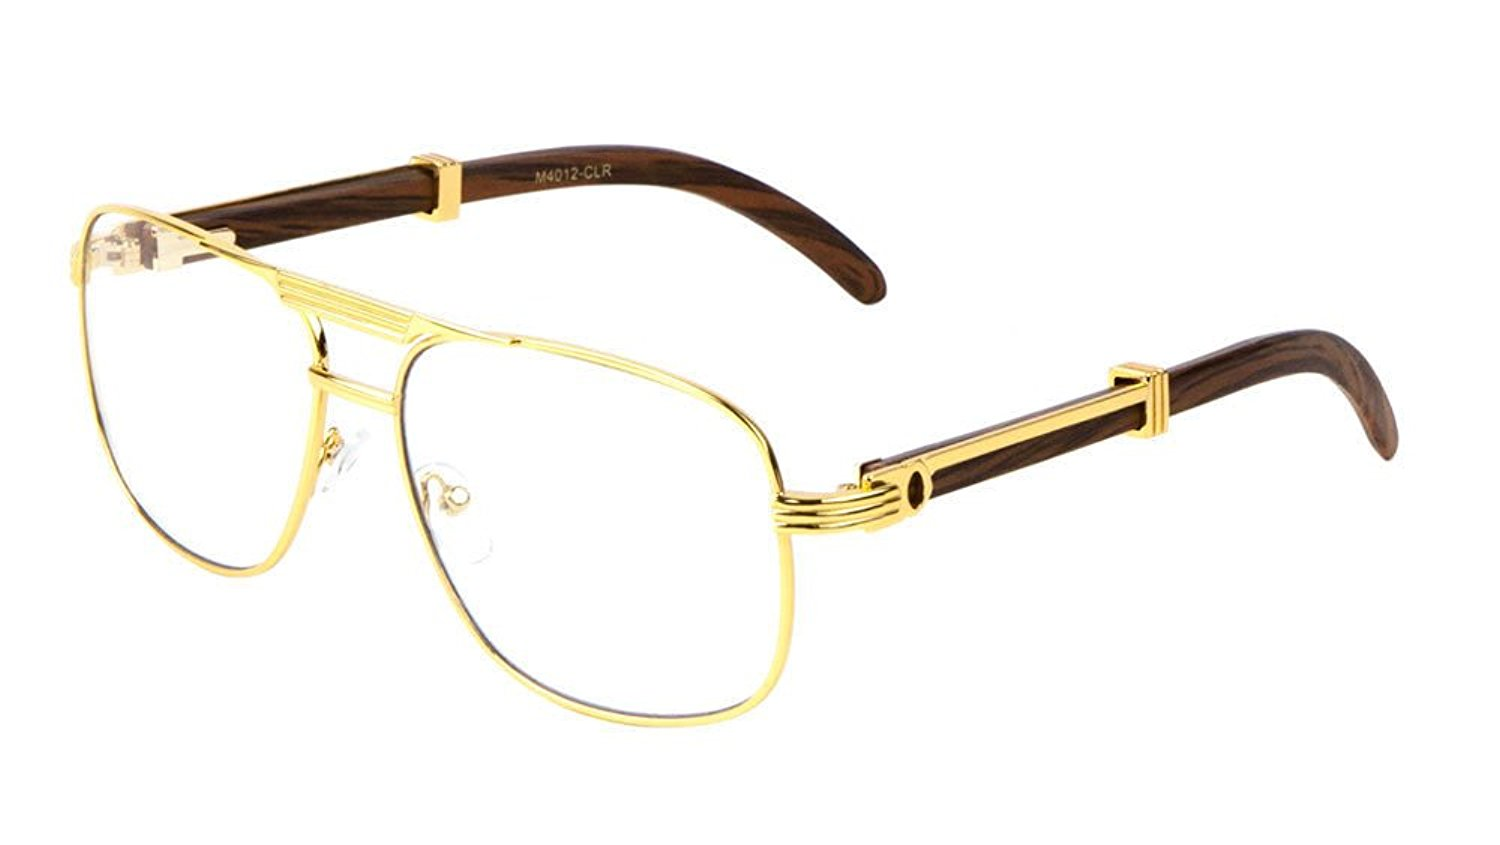 Amazon.com: Executive Metal & Wood Aviator Eyeglasses / Clear Lens ...